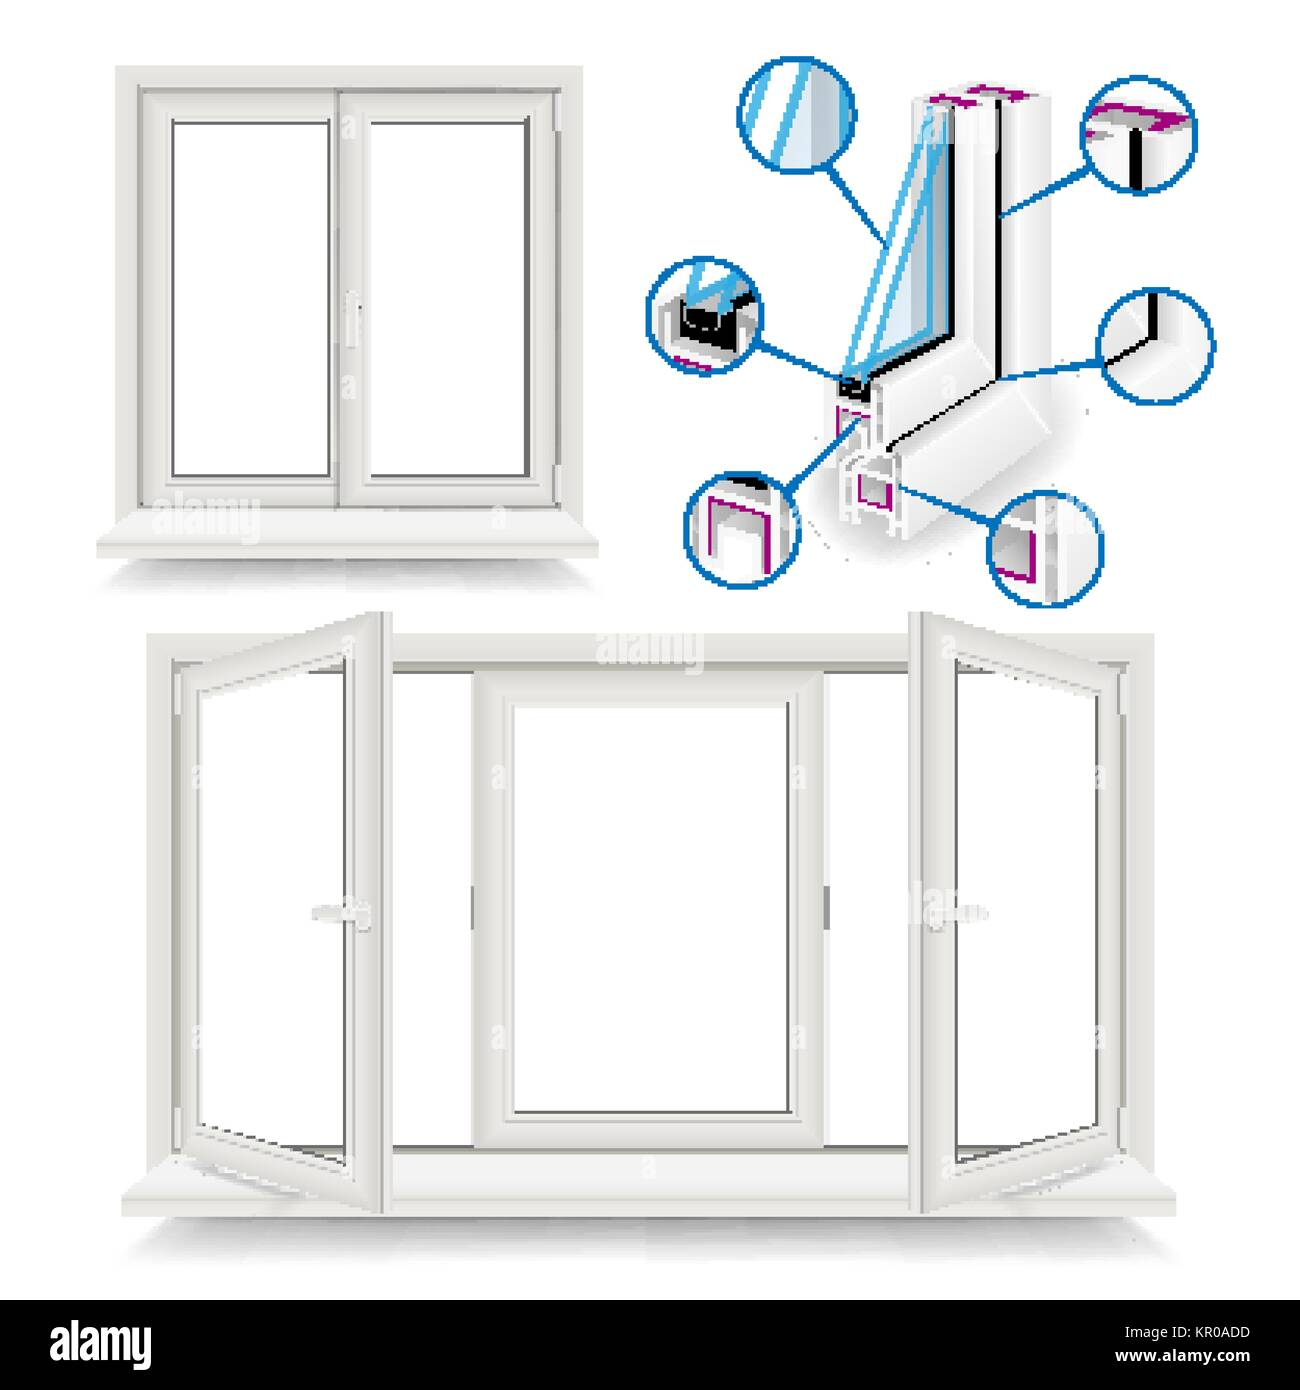 Plastic Window Vector. Infographic Template. Plastic Window Frame ...